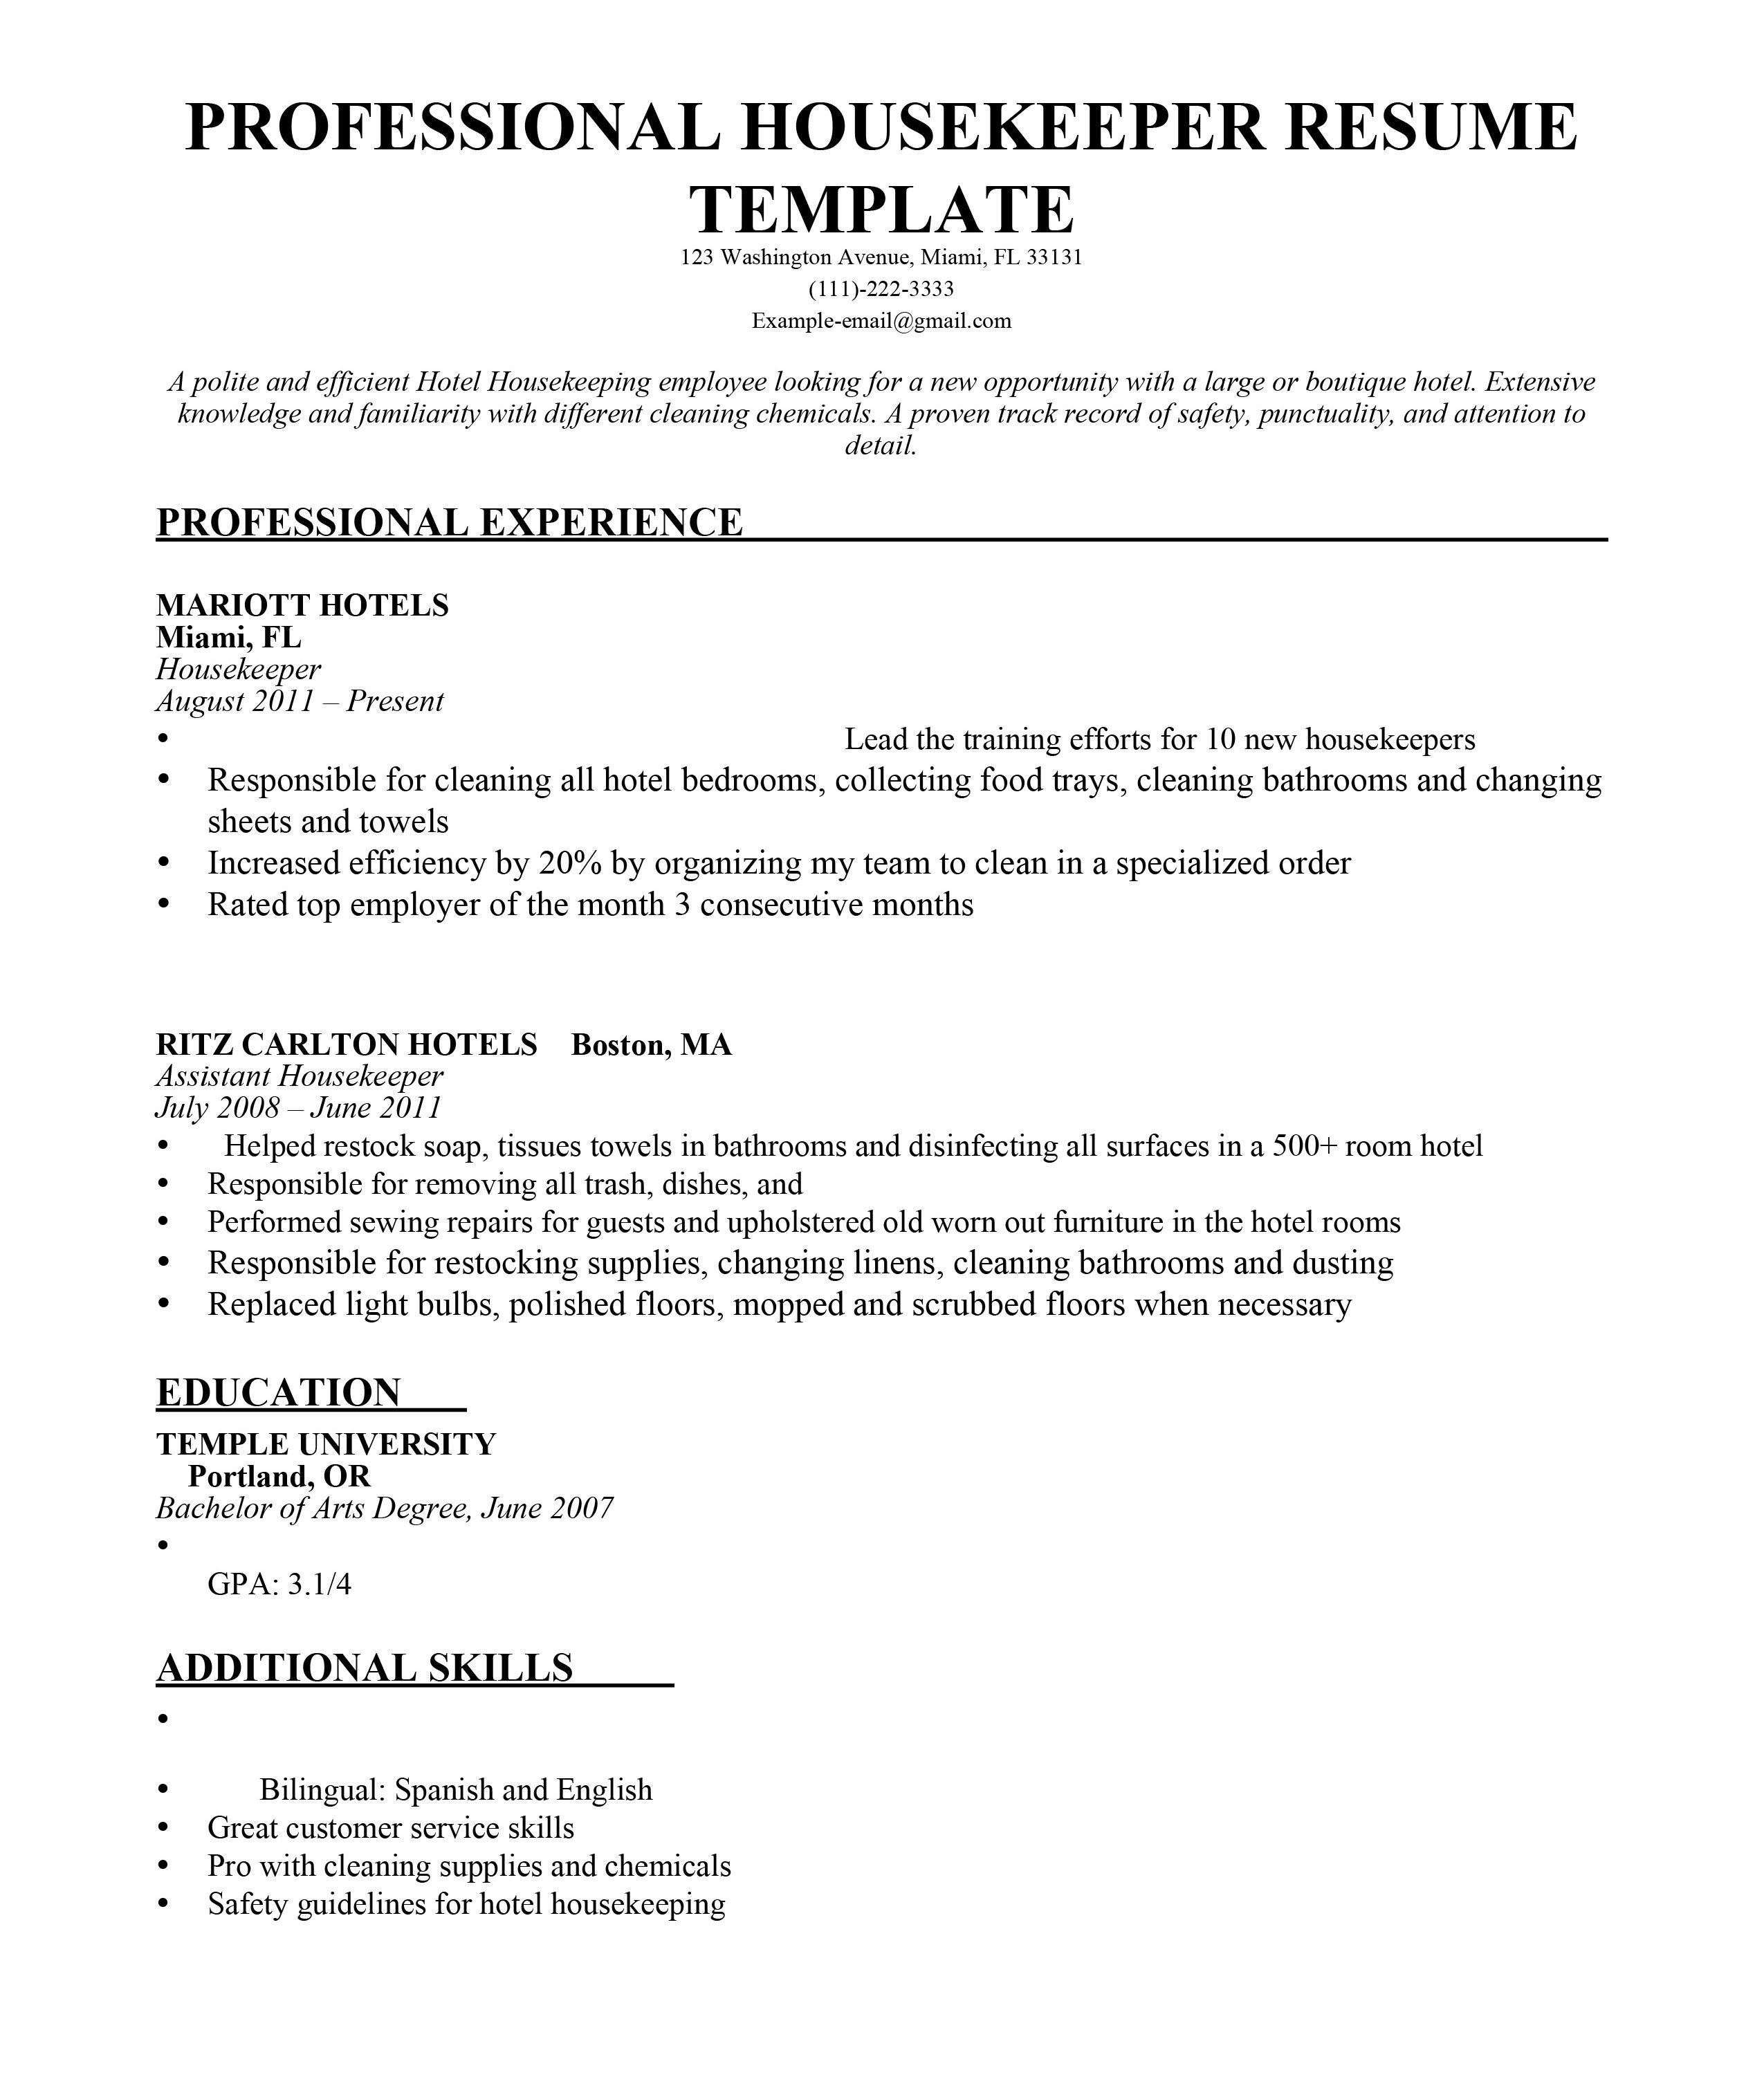 House Cleaning Resume - Cleaning Service Resume Awesome Resume for Cleaner Awesome House